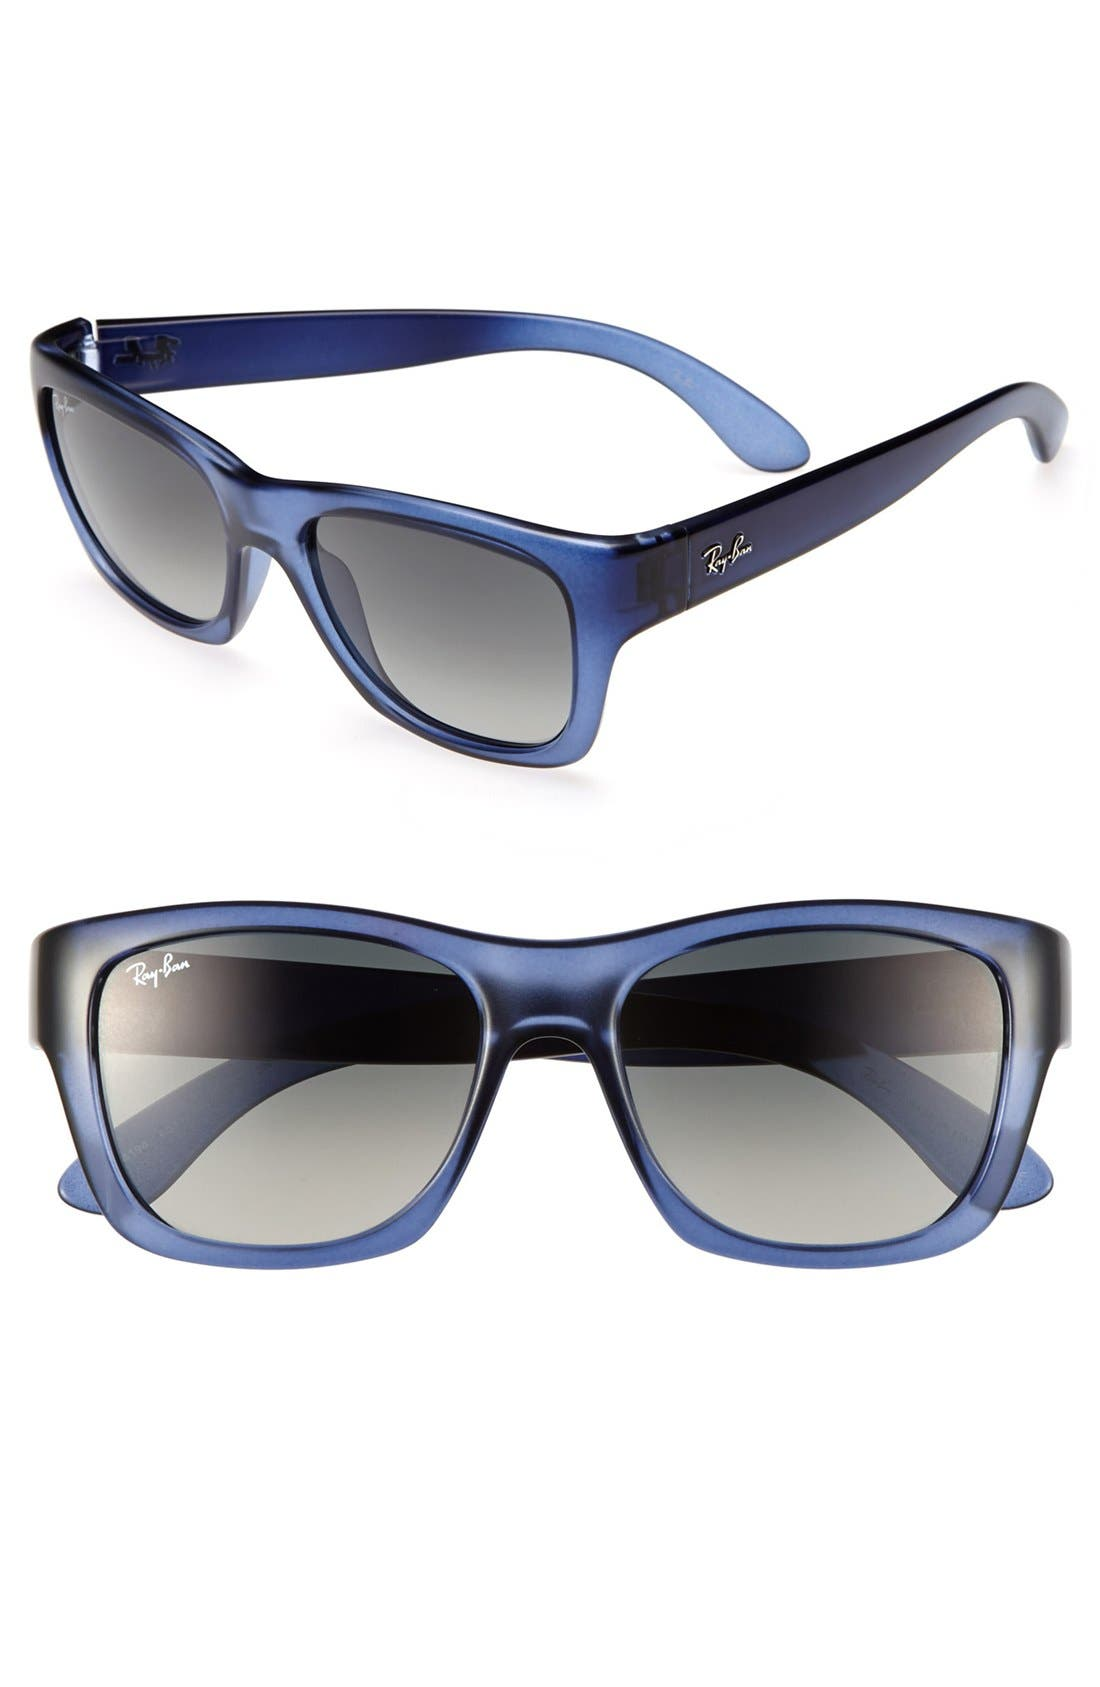 Alternate Image 1 Selected - Ray-Ban 'Square Glam' 53mm Sunglasses